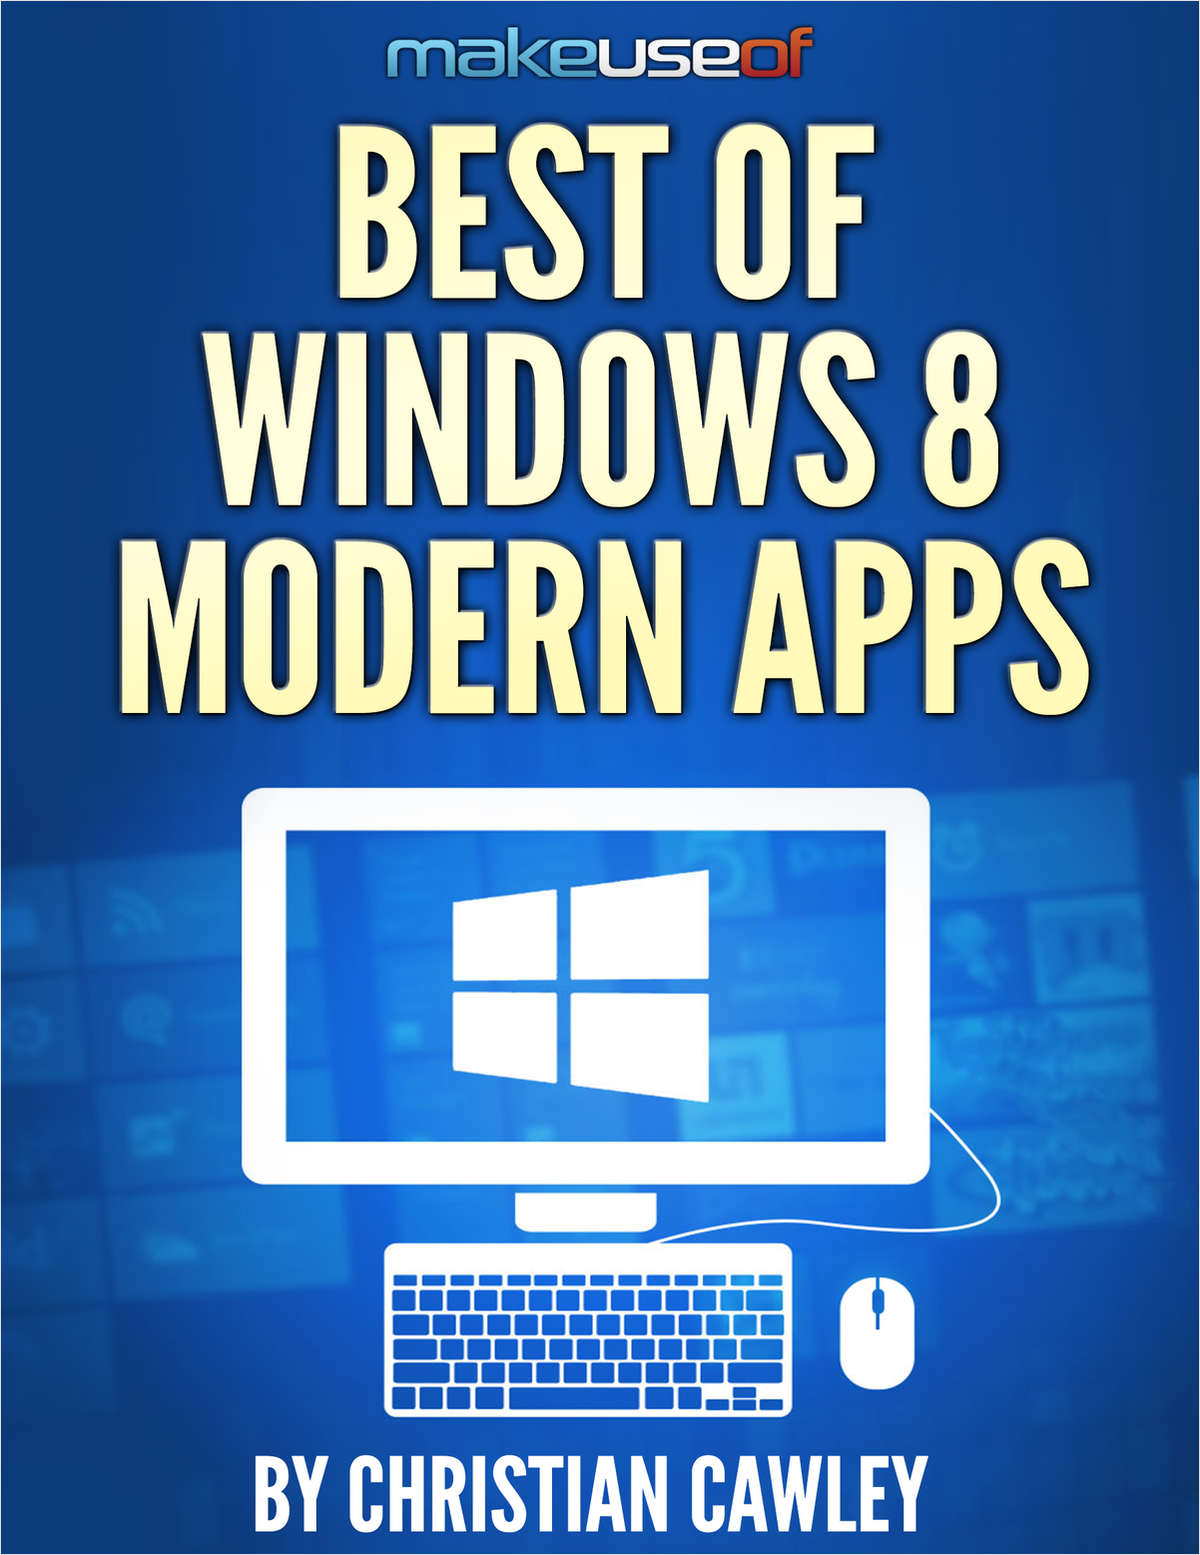 Best of Windows 8 Modern Apps